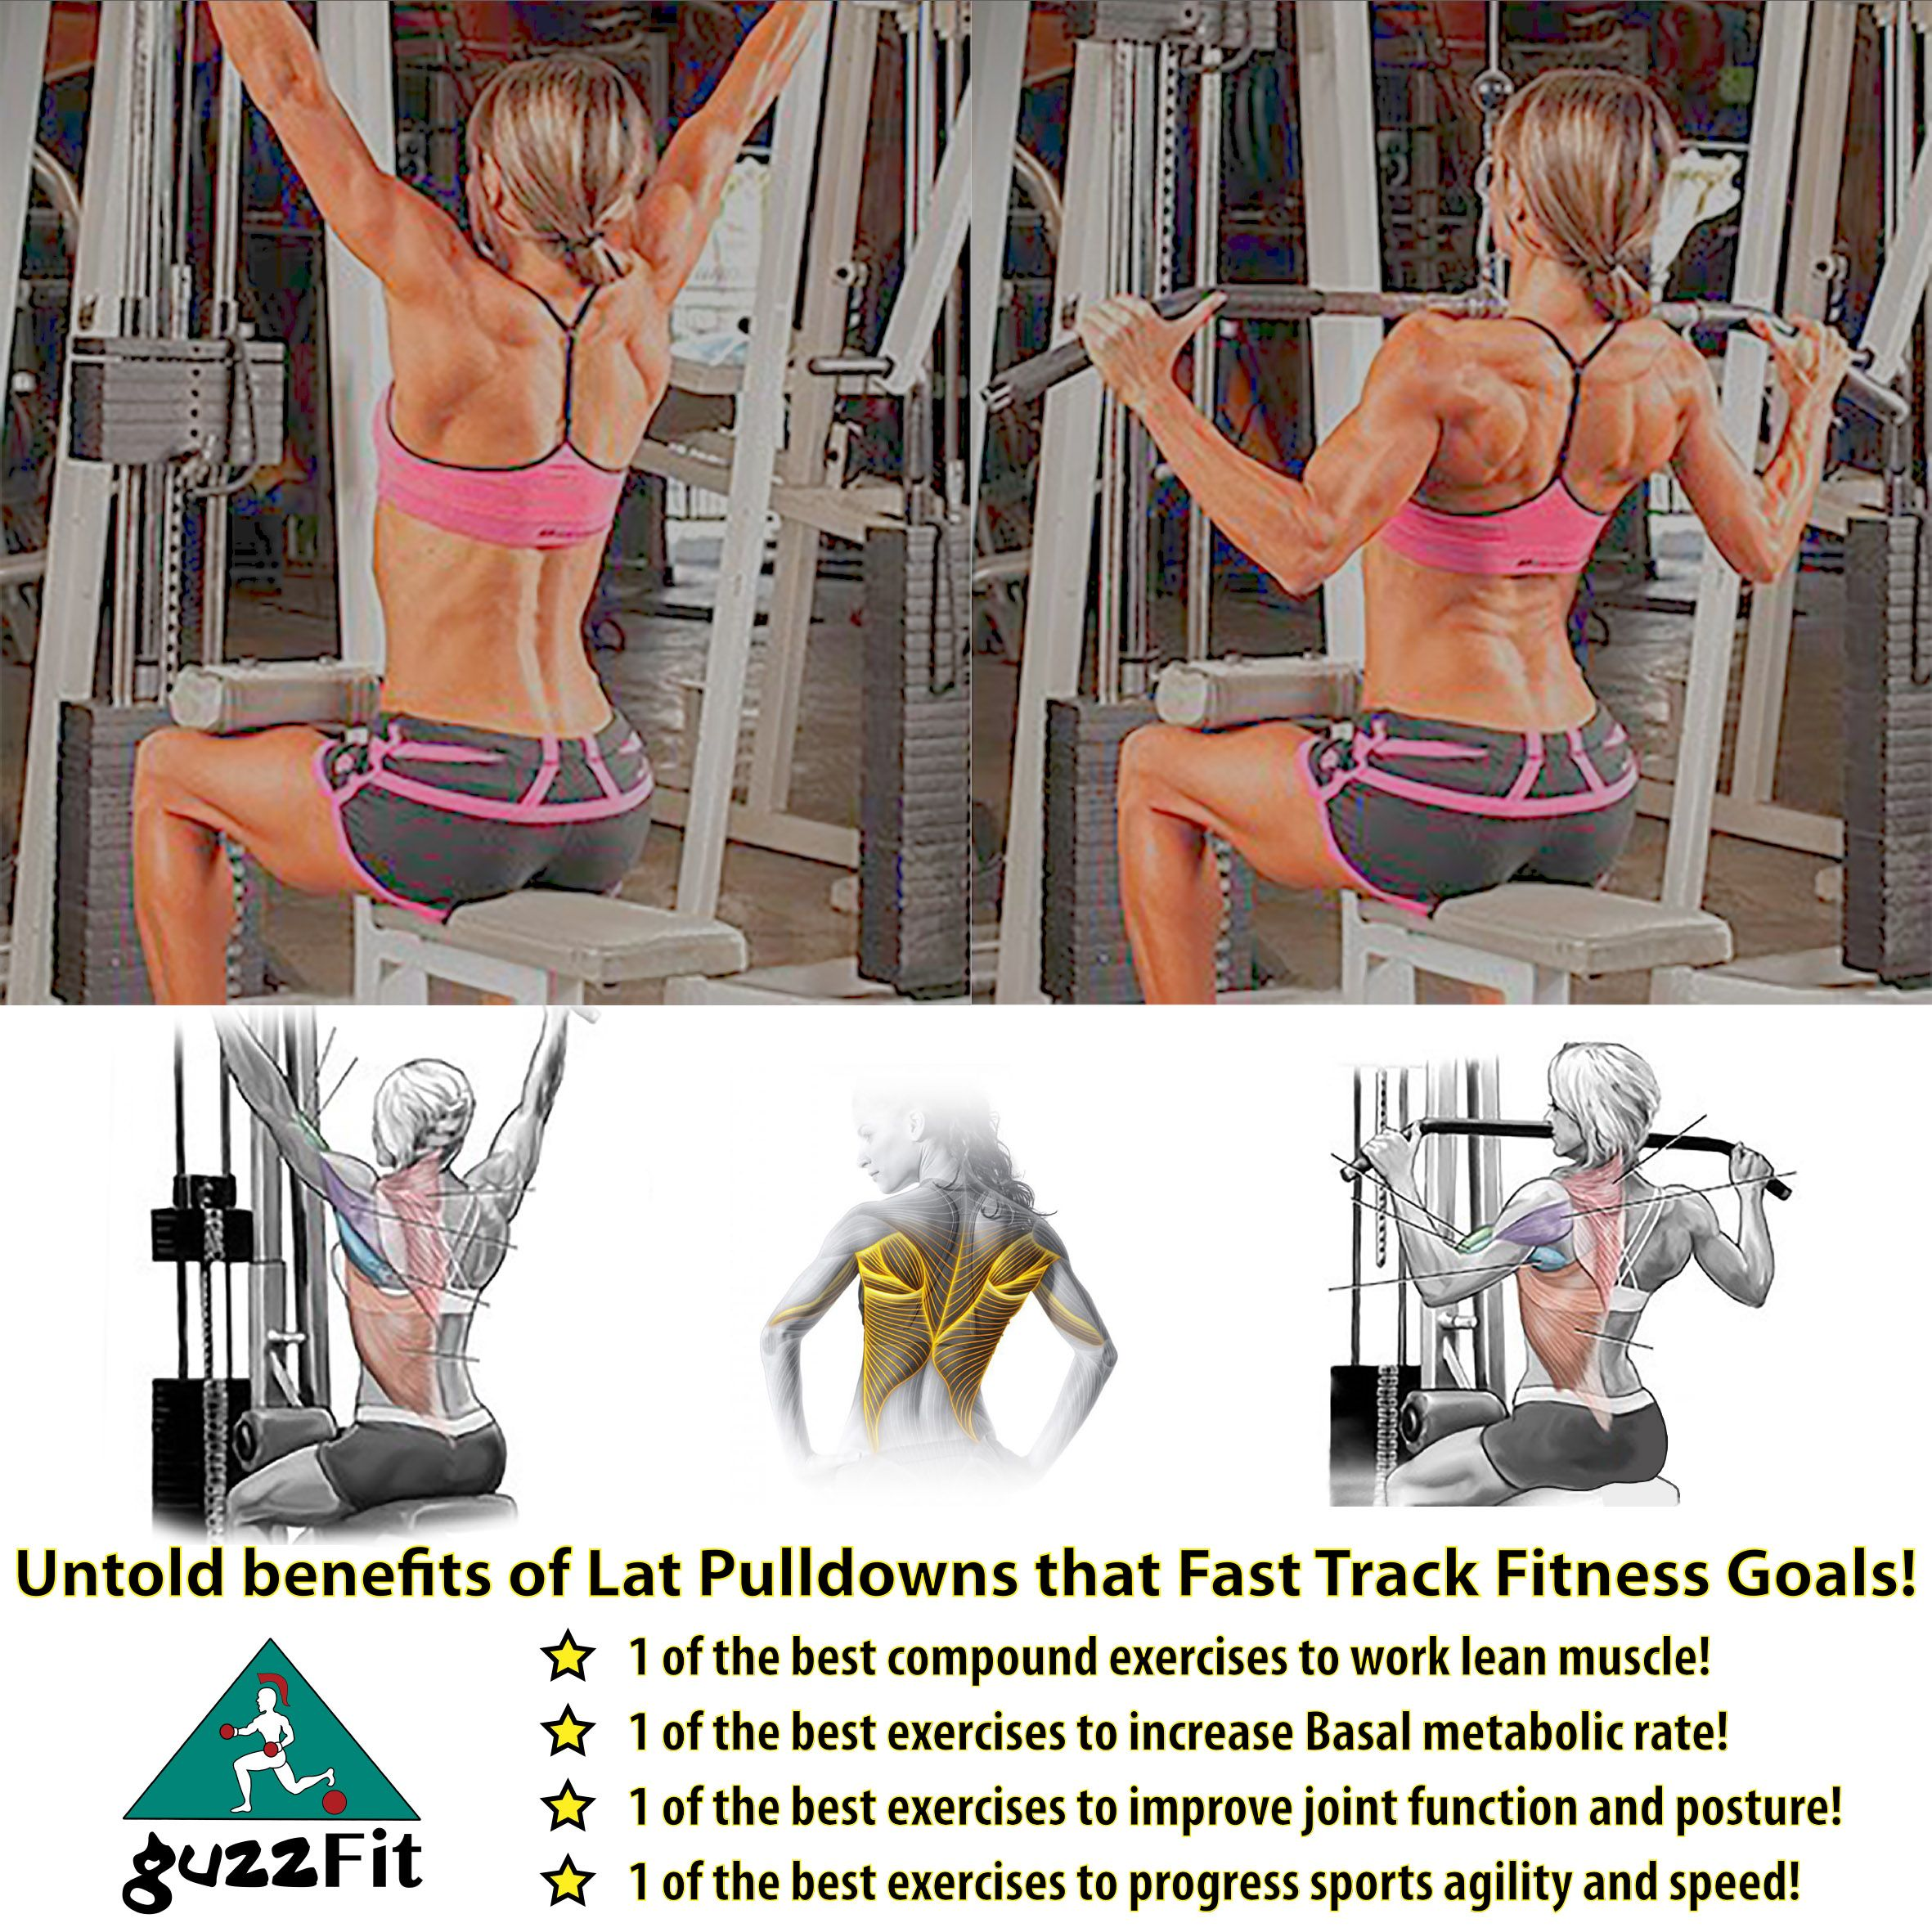 The Lat Pulldown Is 1 Of The Best